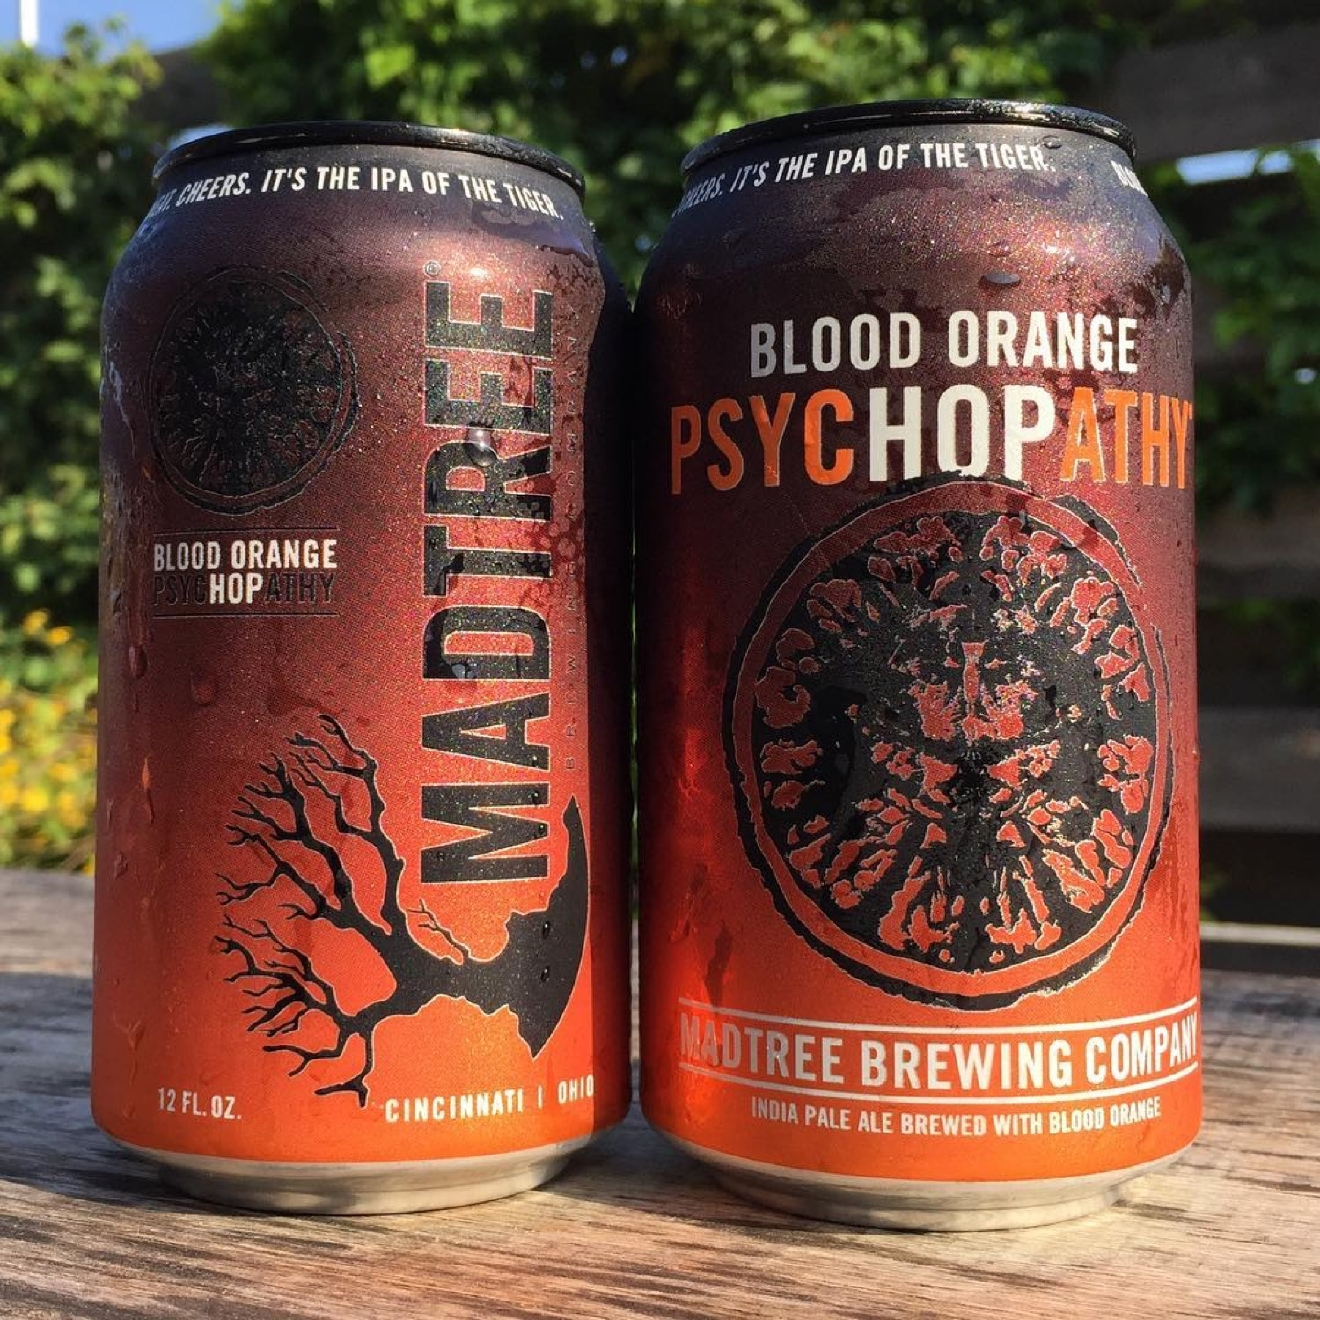 BLOOD ORANGE PSYCHOPATHY by MadTree Brewing / This is Psychopathy taken to another level as a nod to Cincinnati's newest sports franchise, FC Cincinnati. / Image courtesy of MadTree Brewing // Published: 1.10.17